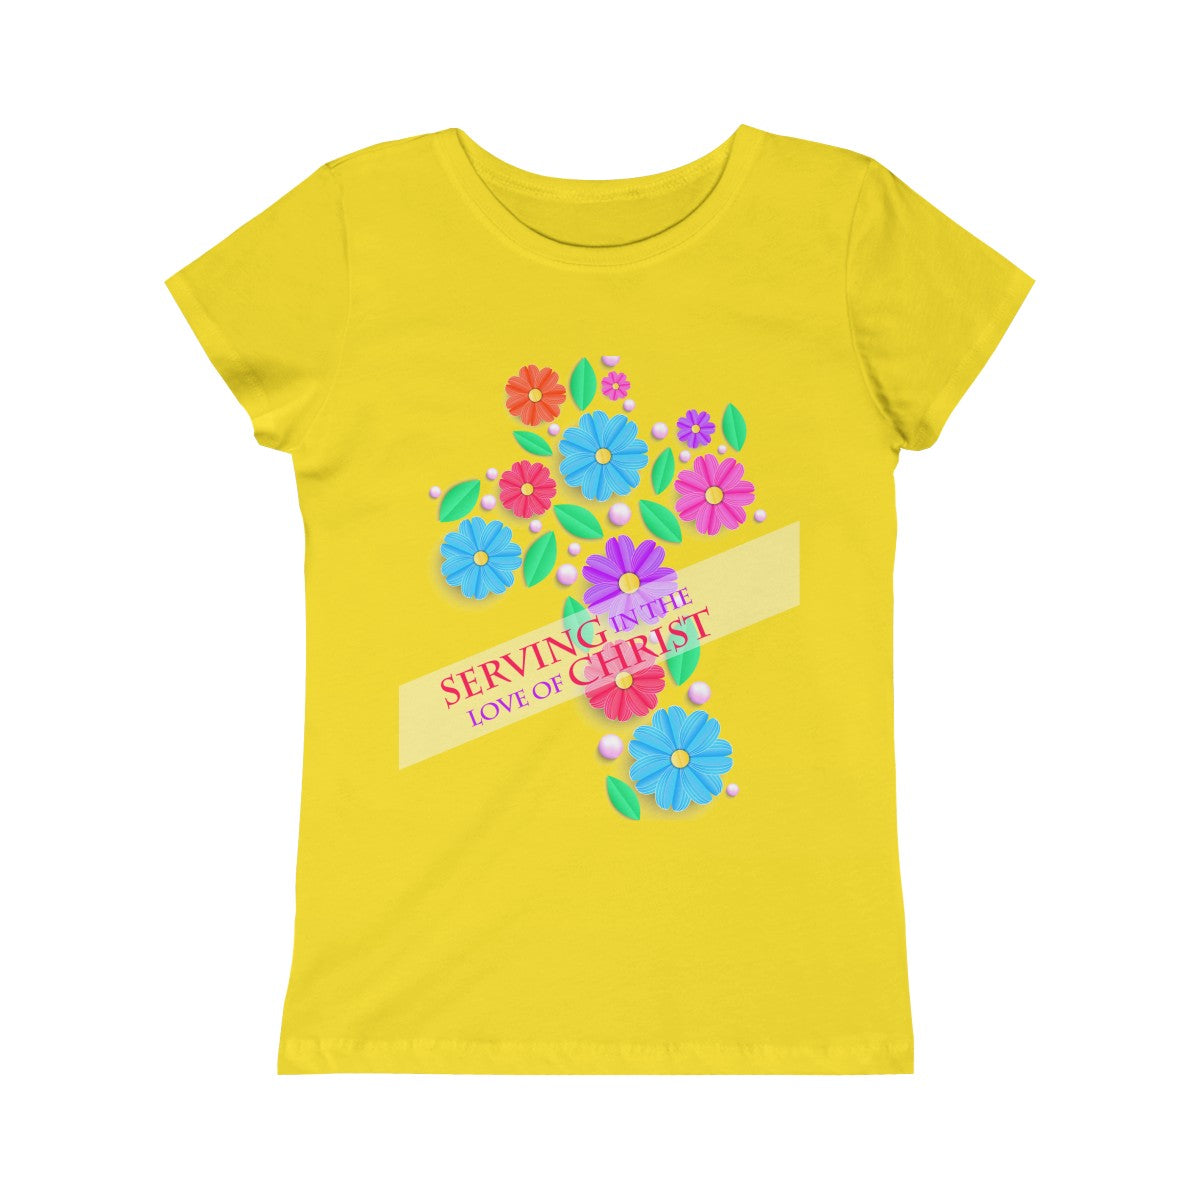 Serving In The Love of Christ Girls Princess Tee